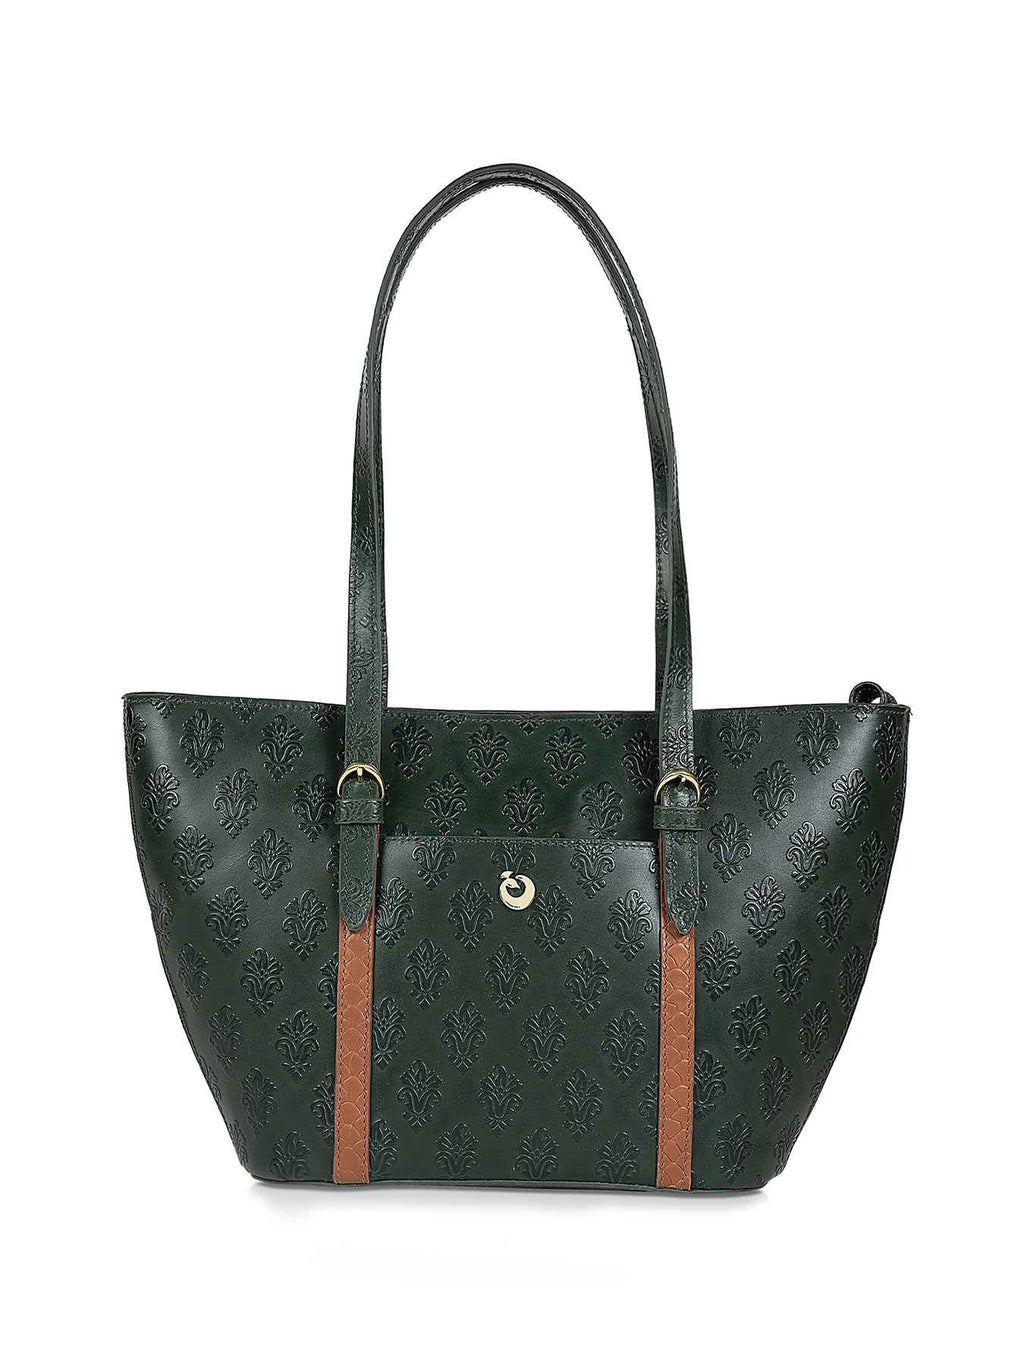 Ursula Green Leather Tote